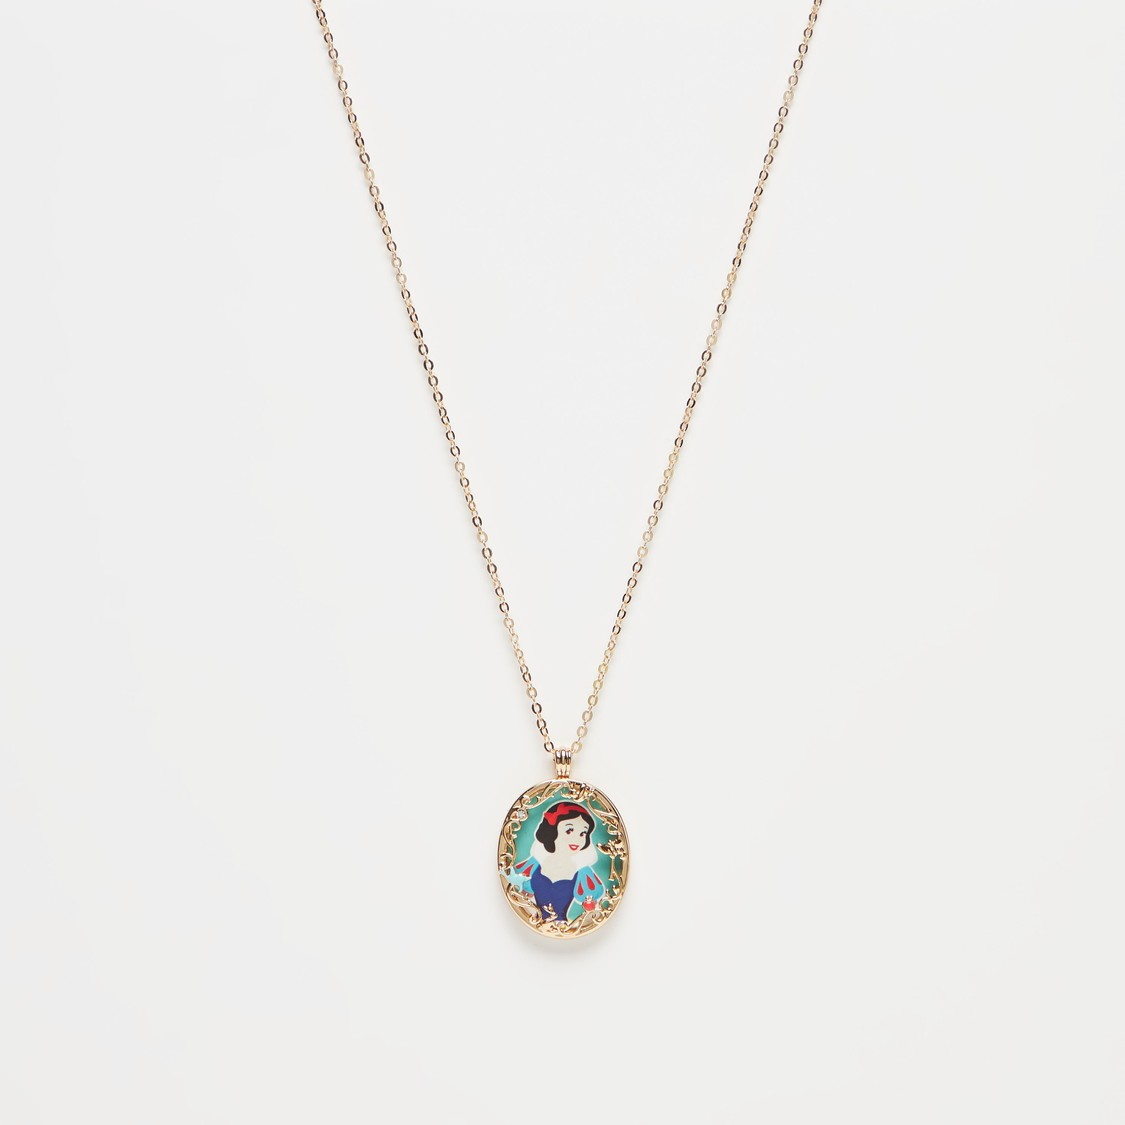 Alice in Wonderland Pendant Necklace with Lobster Clasp